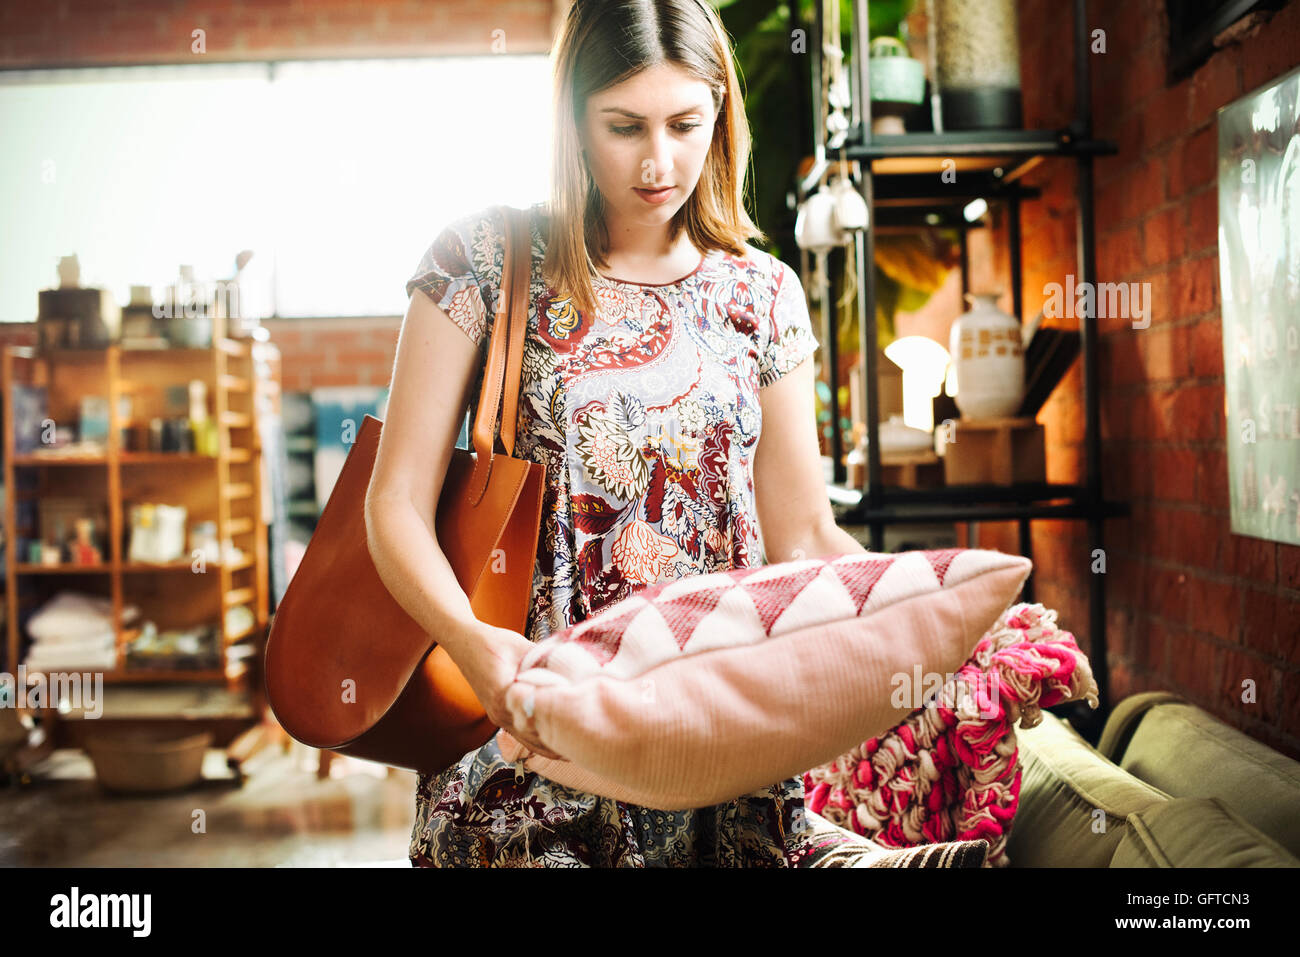 Young woman standing in a shop holding a cushion - Stock Image